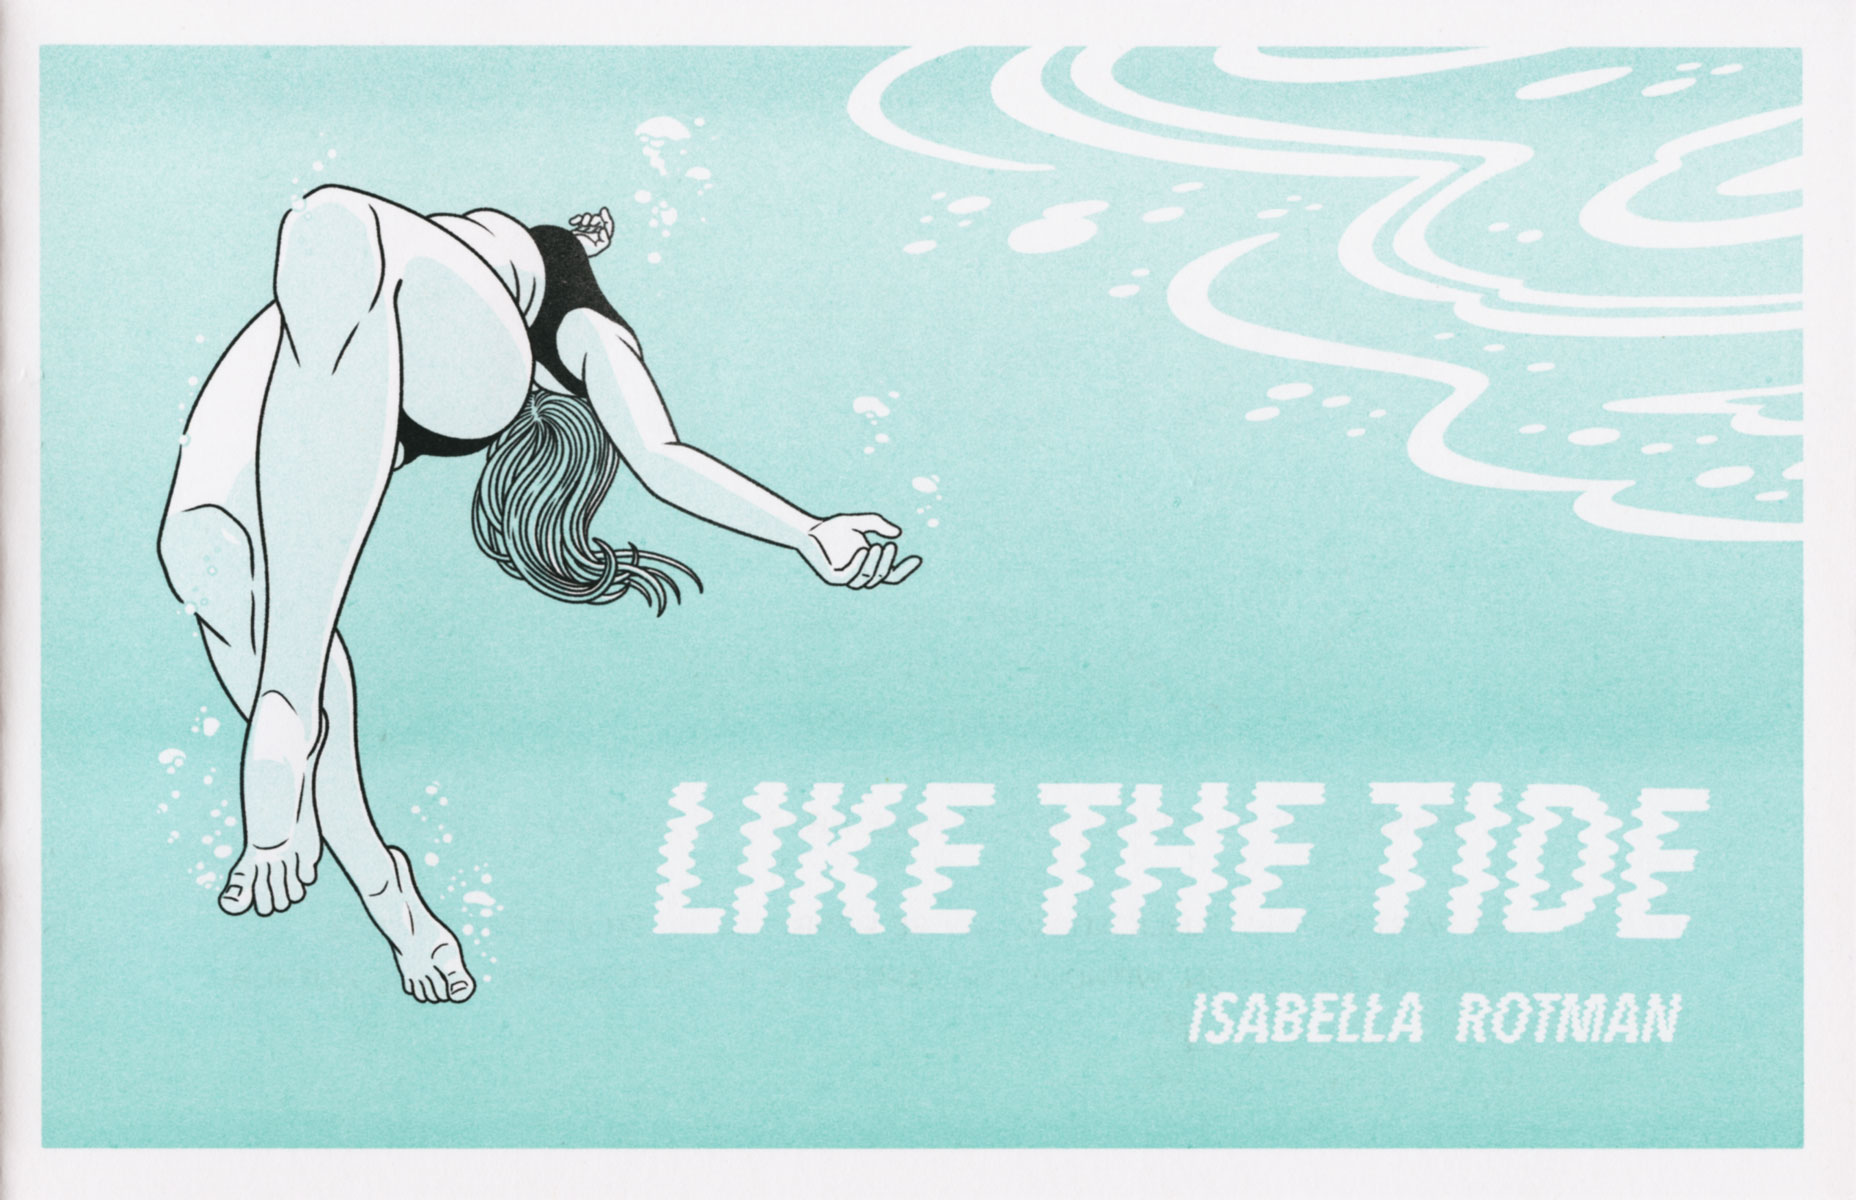 Like The Tide by Isabella Rotman